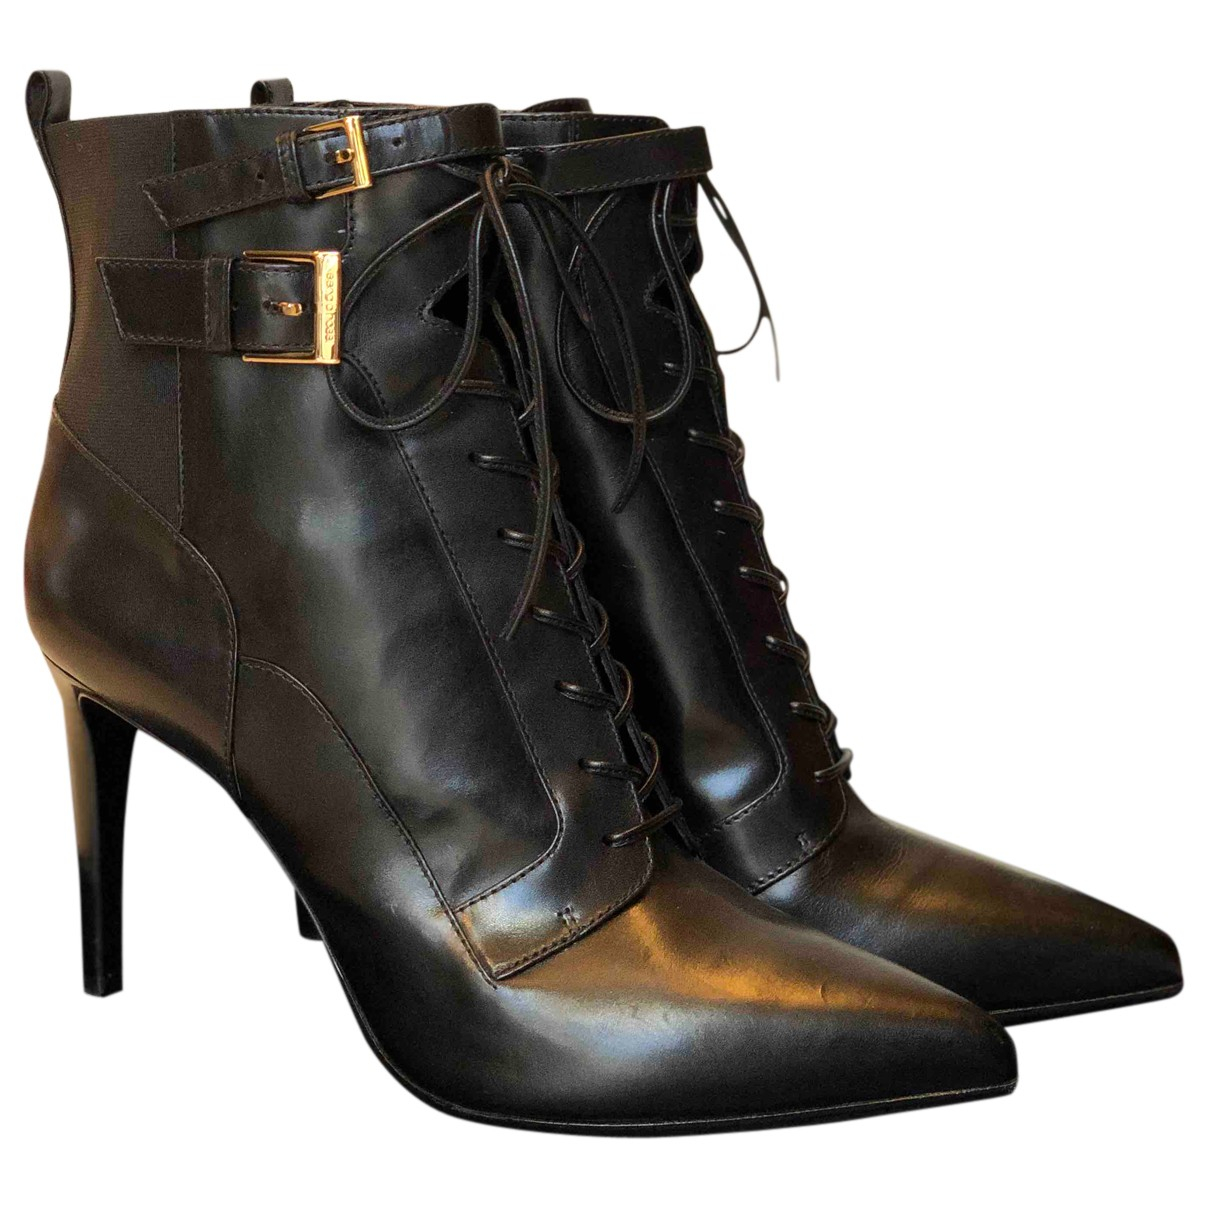 Sergio Rossi N Black Leather Ankle boots for Women 41.5 IT